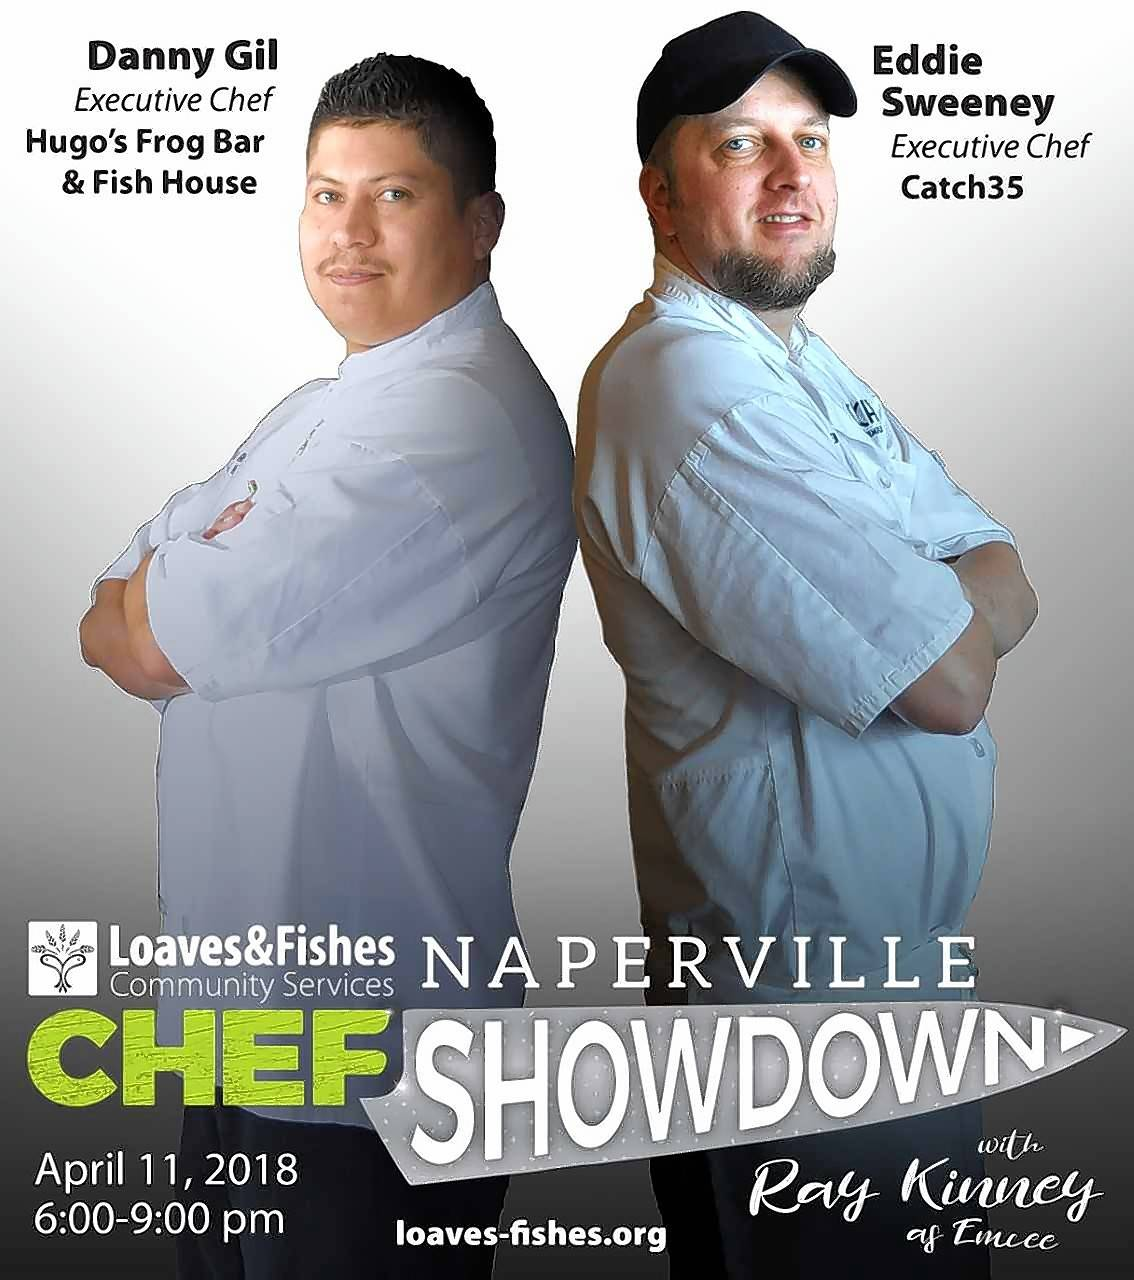 Loaves and Fishes Community Services is hosting its inaugural Chef Showdown fundraiser from 6 to 8 p.m. Wednesday, April 11, challenging two Naperville chefs to create a winning menu item from a list of ingredients including -- of course -- a loaf and a fish.